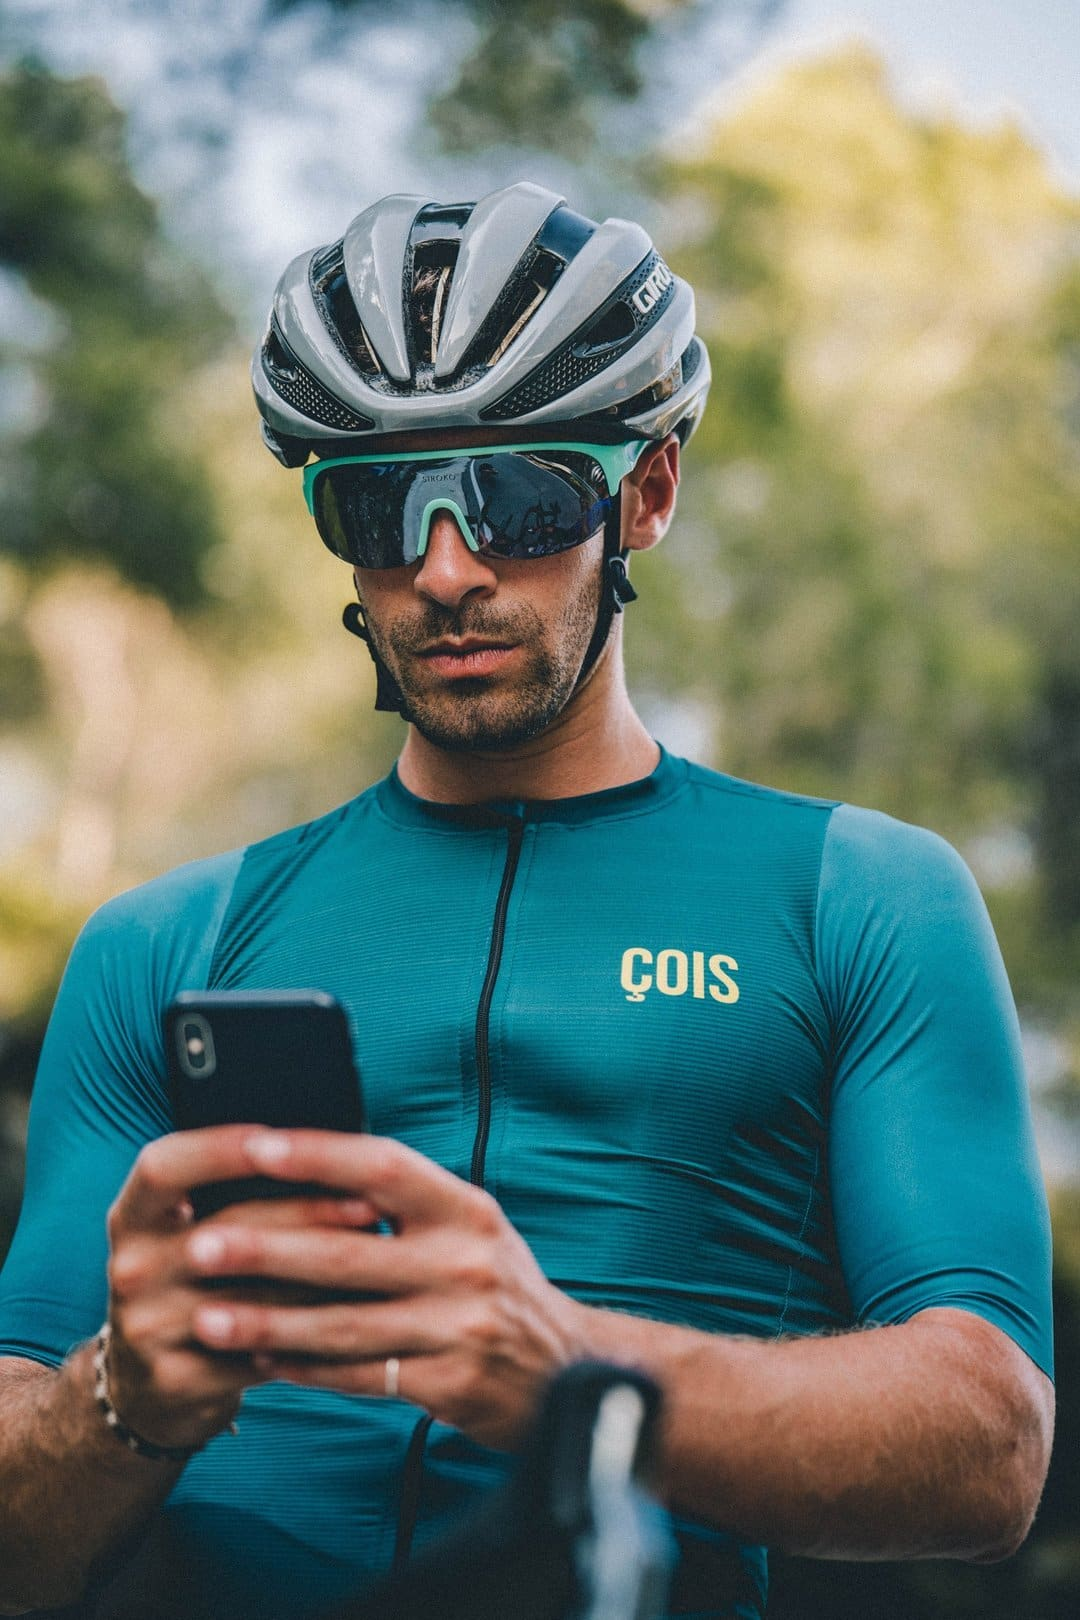 ÇOIS Rouleur Cycling Jersey Green